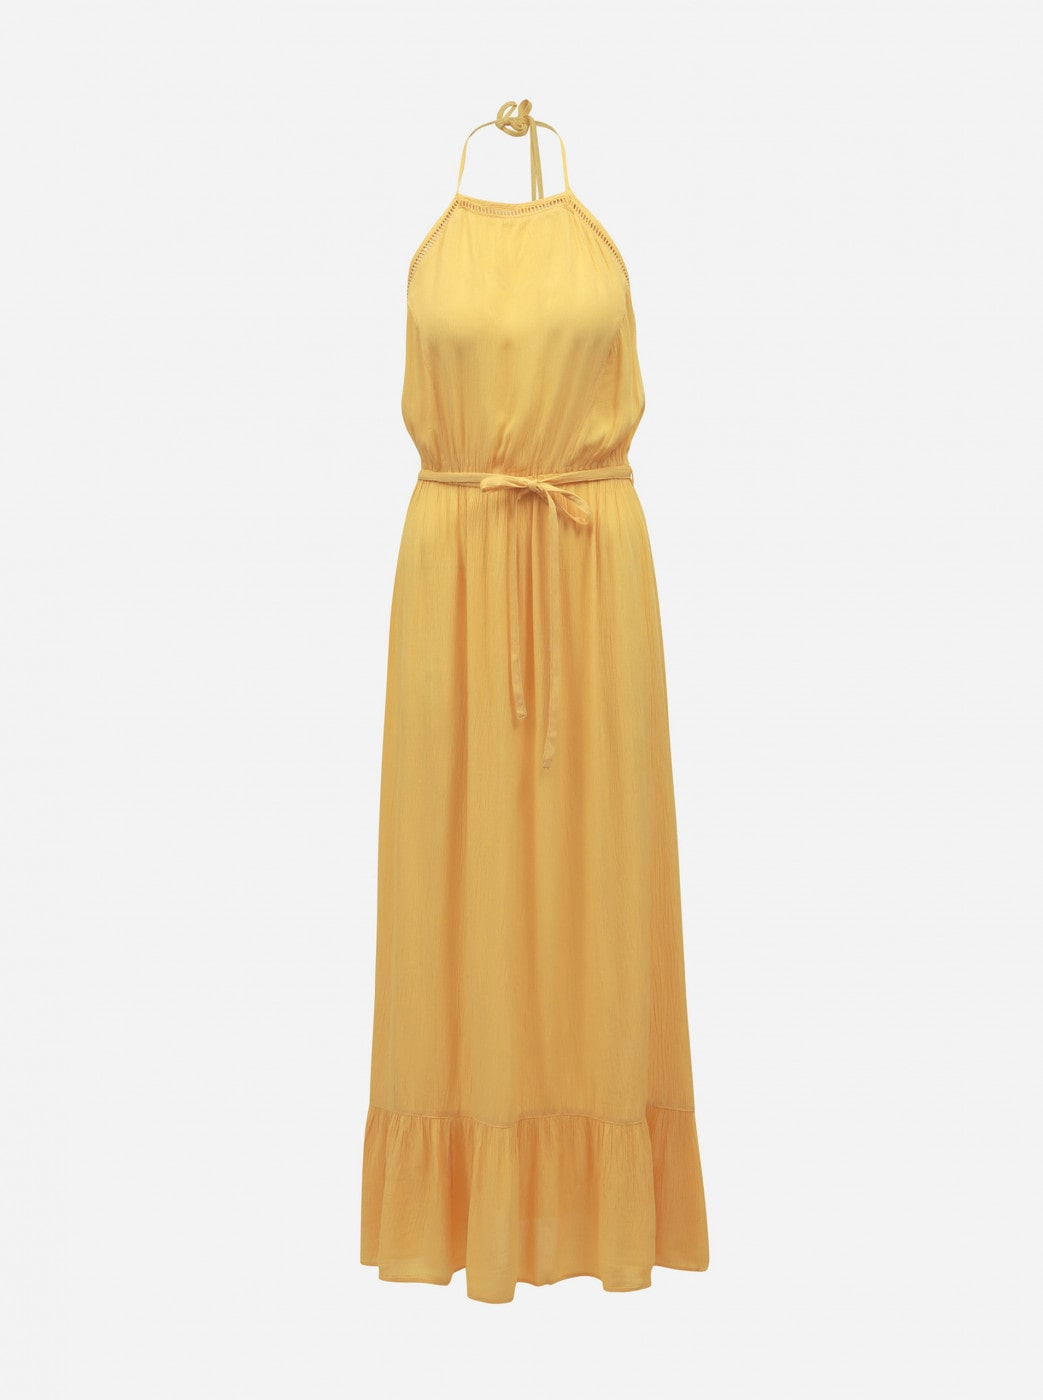 Miss Selfridge's Yellow Maxi Dress